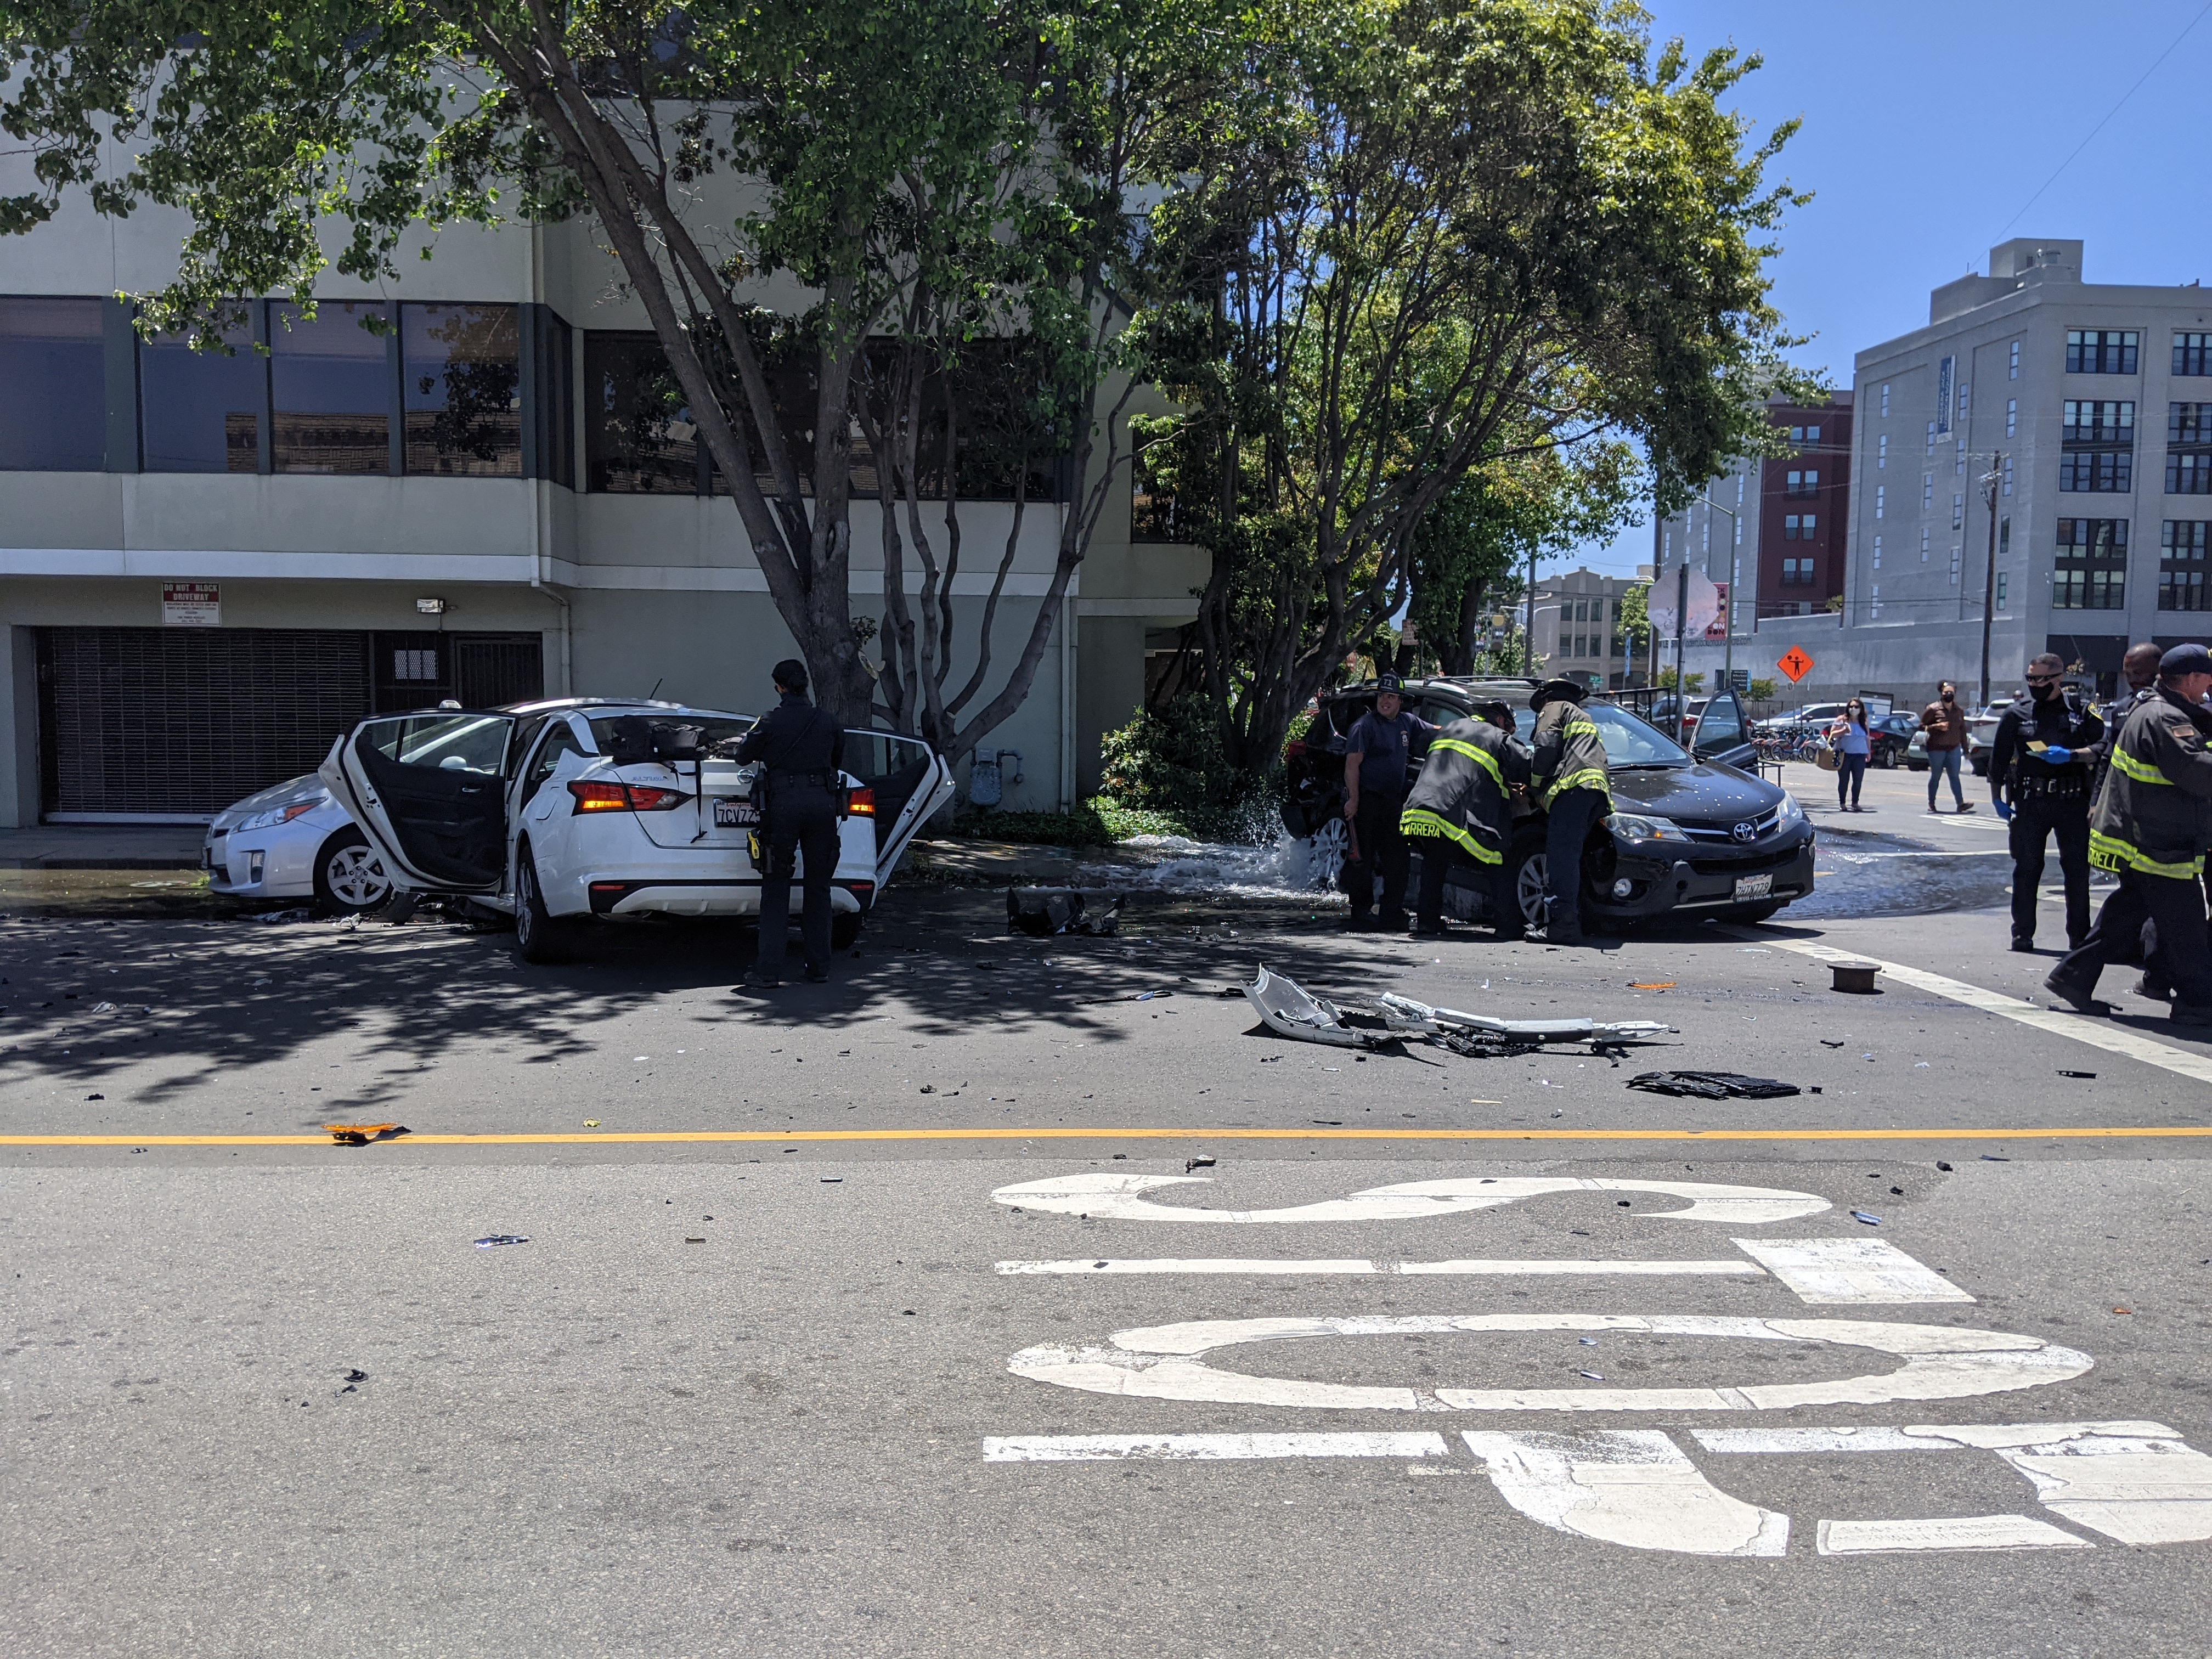 While OakDOT prepares to remove safety measures on Telegraph, the carnage continues. Example: this serious crash in Jack London that sent two children to the hospital. Photo: Streetsblog/Rudick